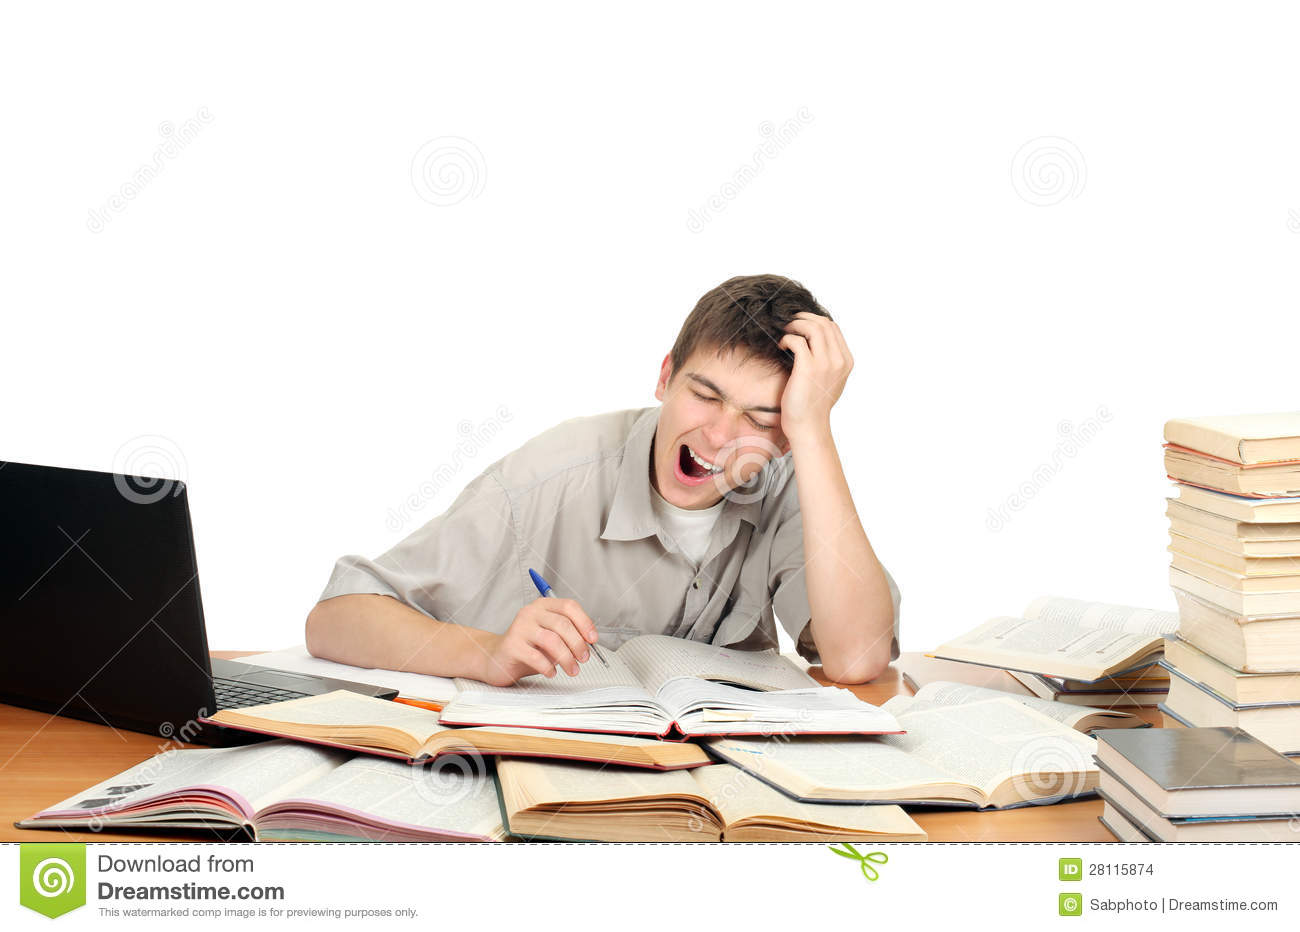 Student Yawning stock photo. Image of overworked, sleepy ...